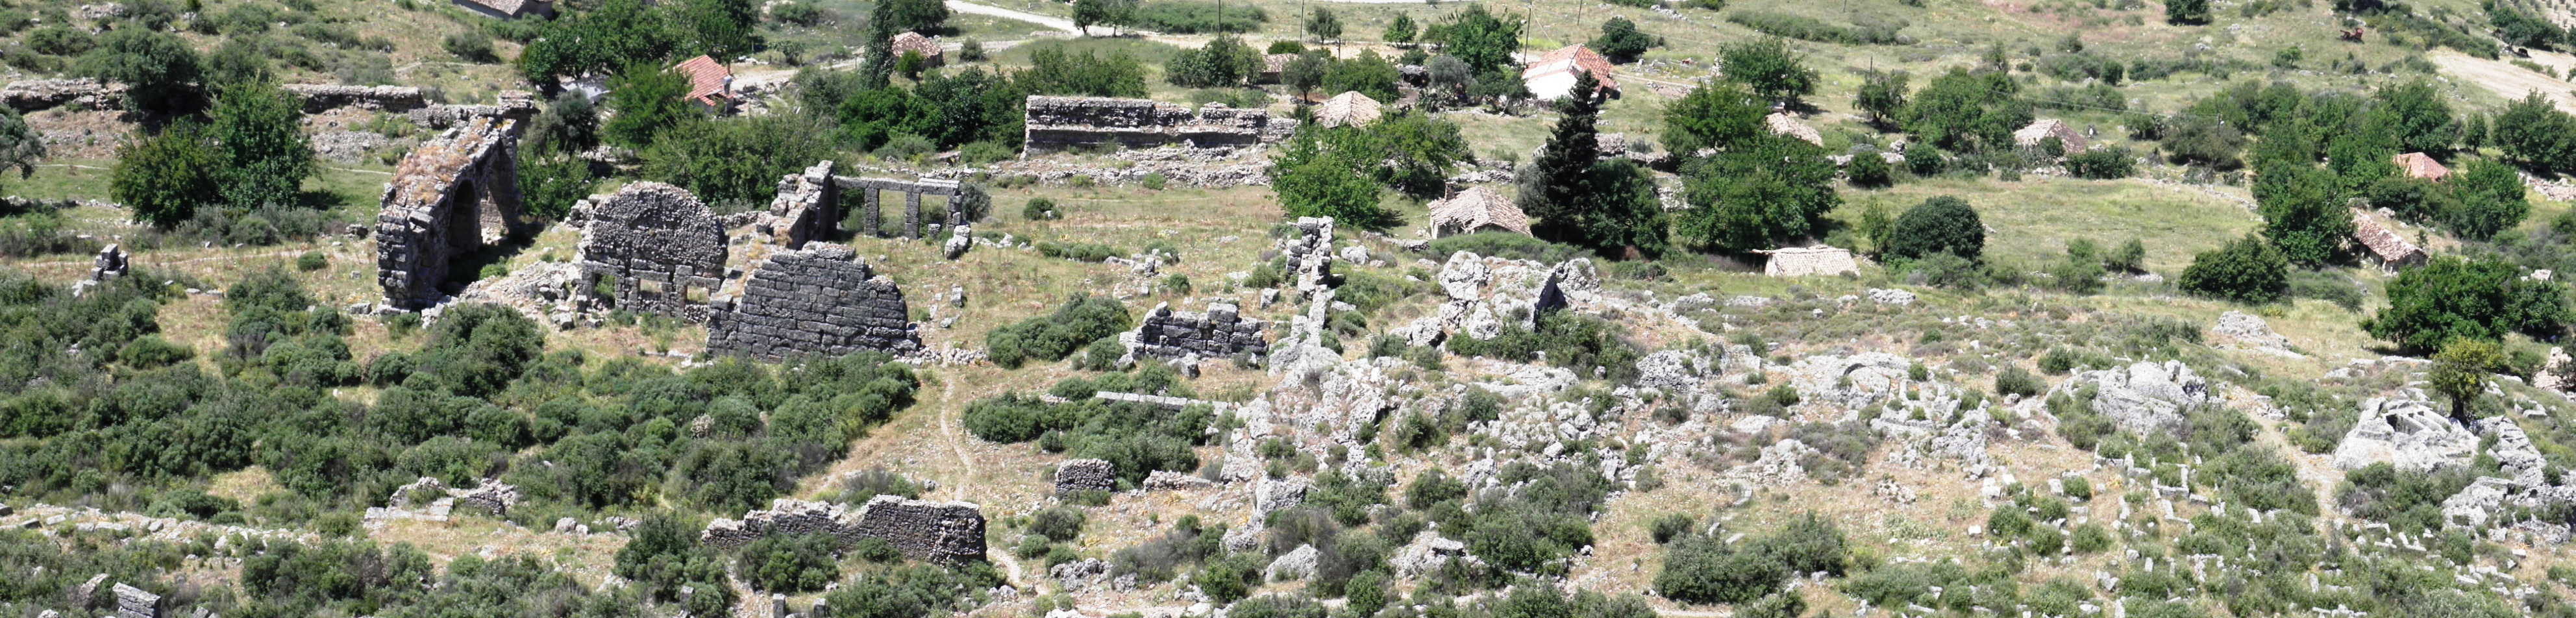 The ruins of the ancient sillyon photo